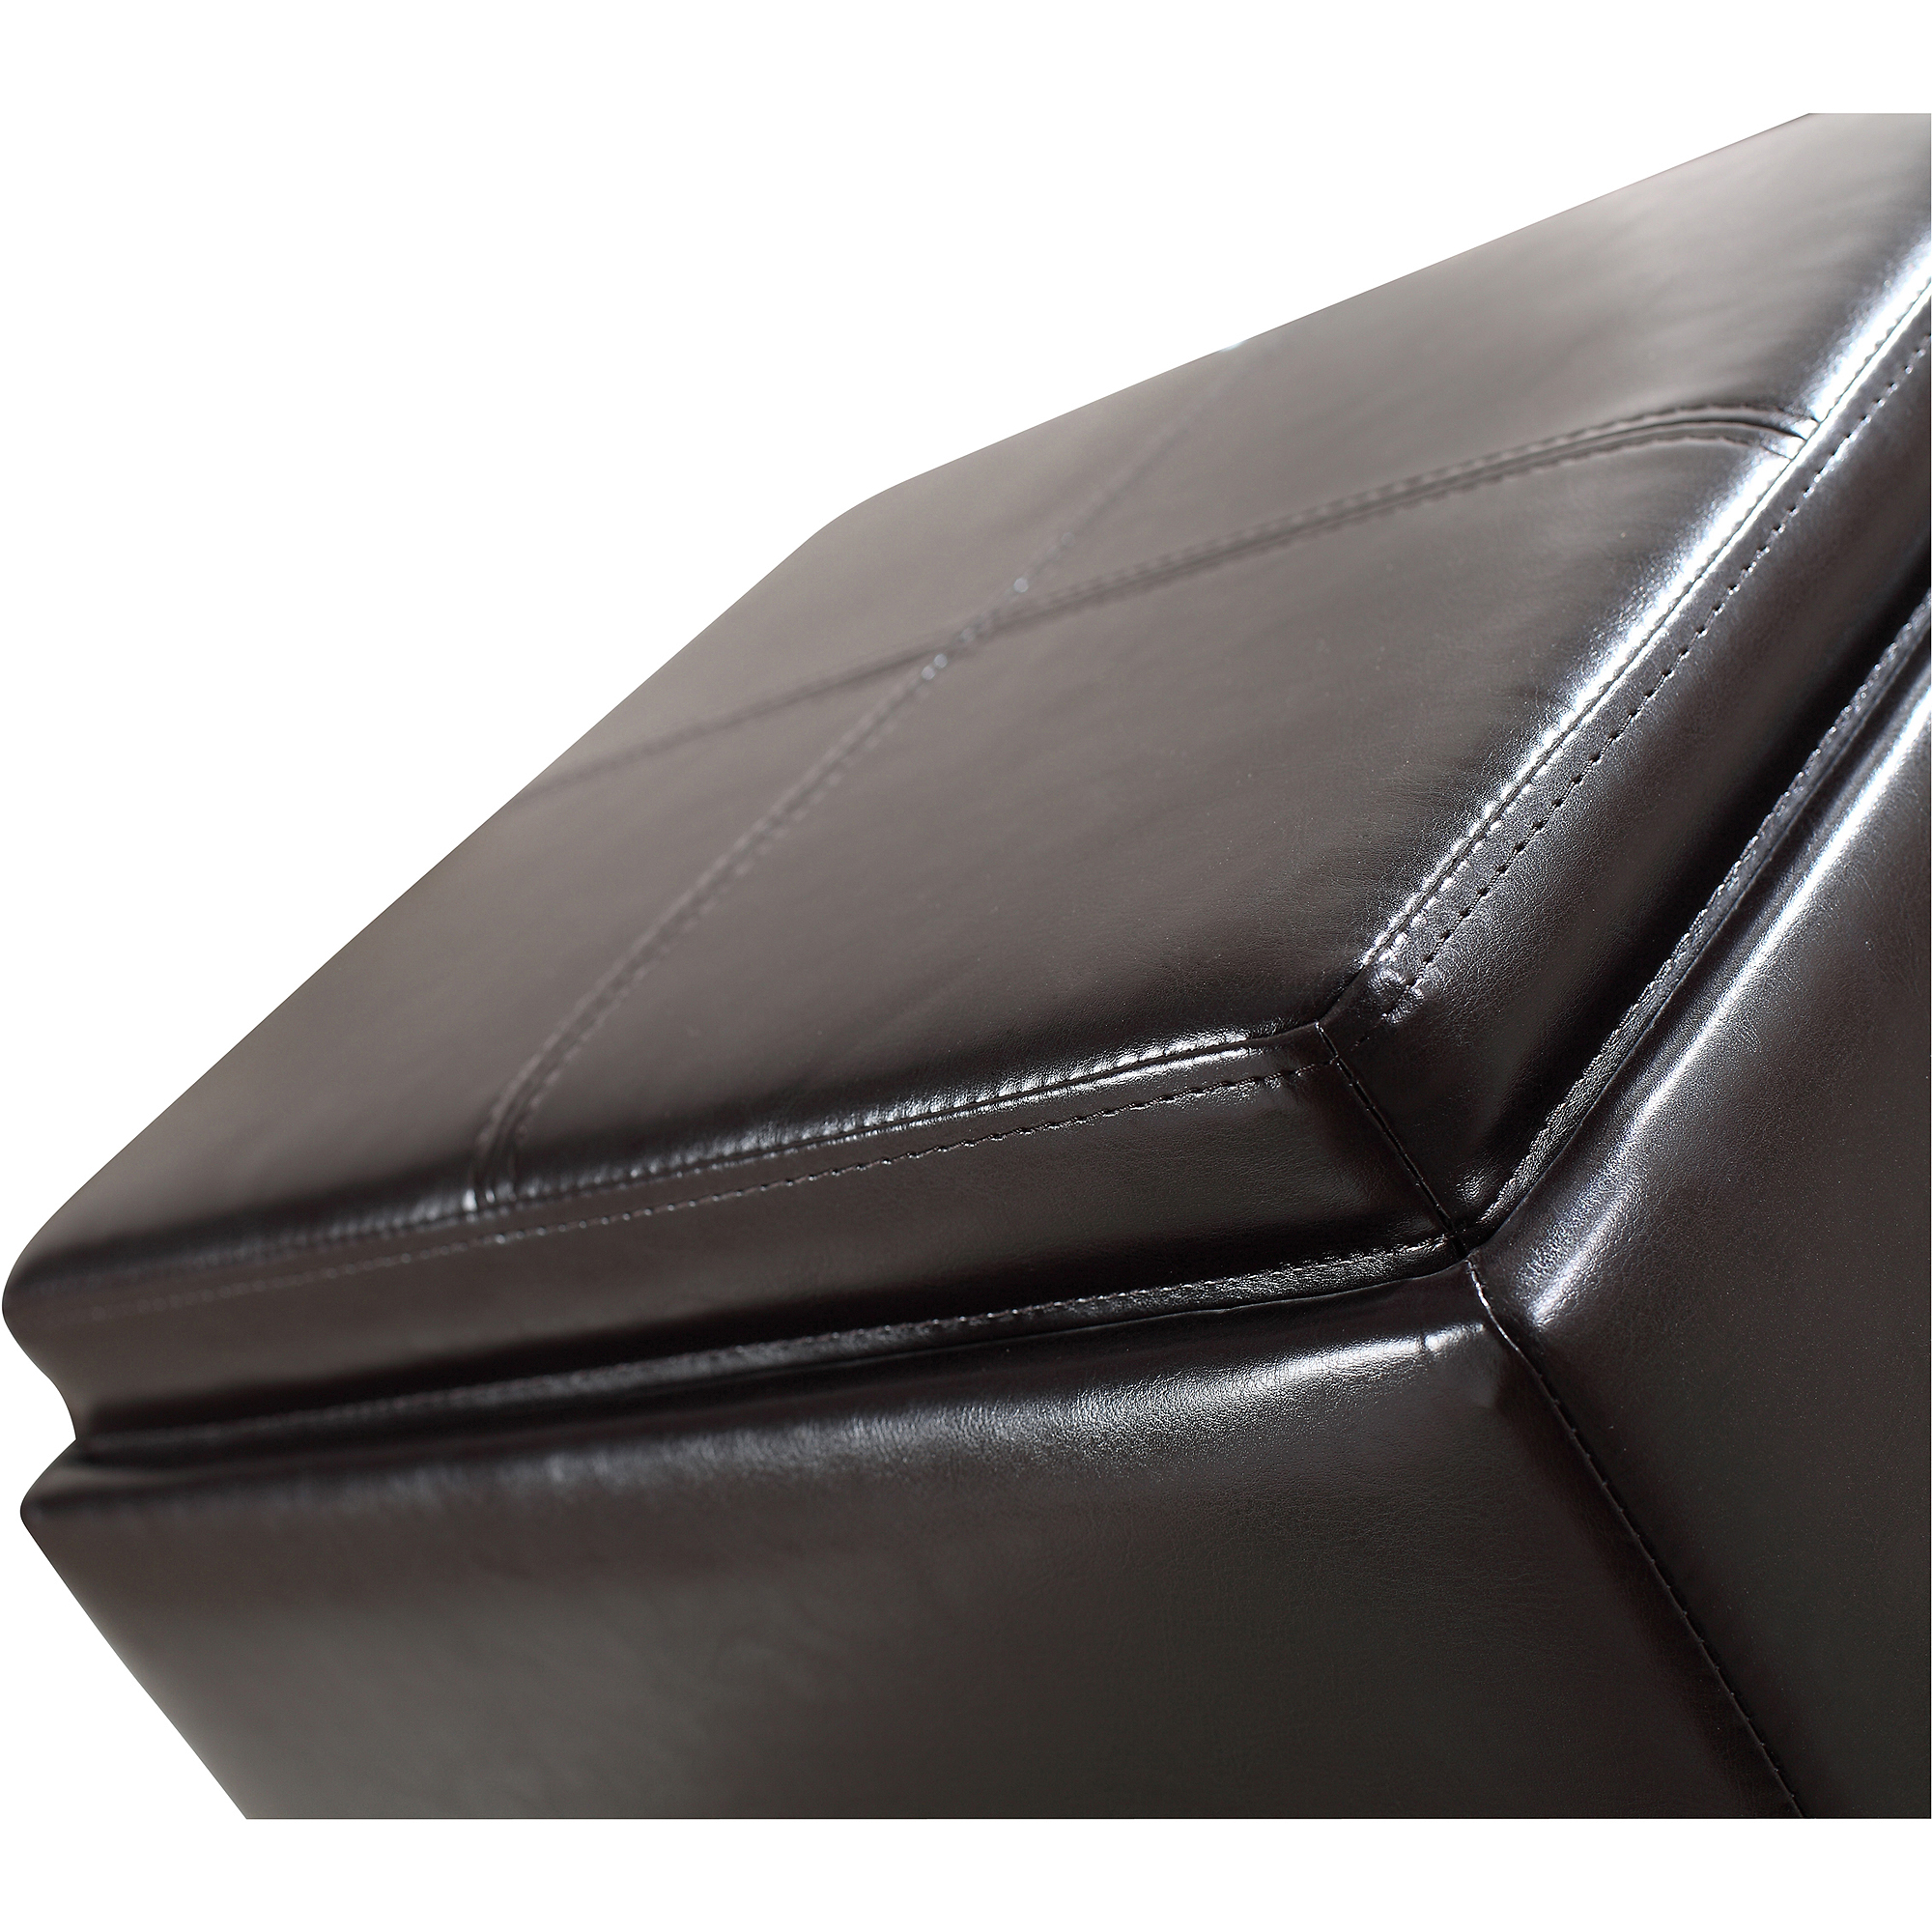 Extra Large Ottoman for Large Space Living Room Design: Extra Large Ottoman | Leather Rectangular Ottoman Coffee Table | Large Square Ottoman With Storage